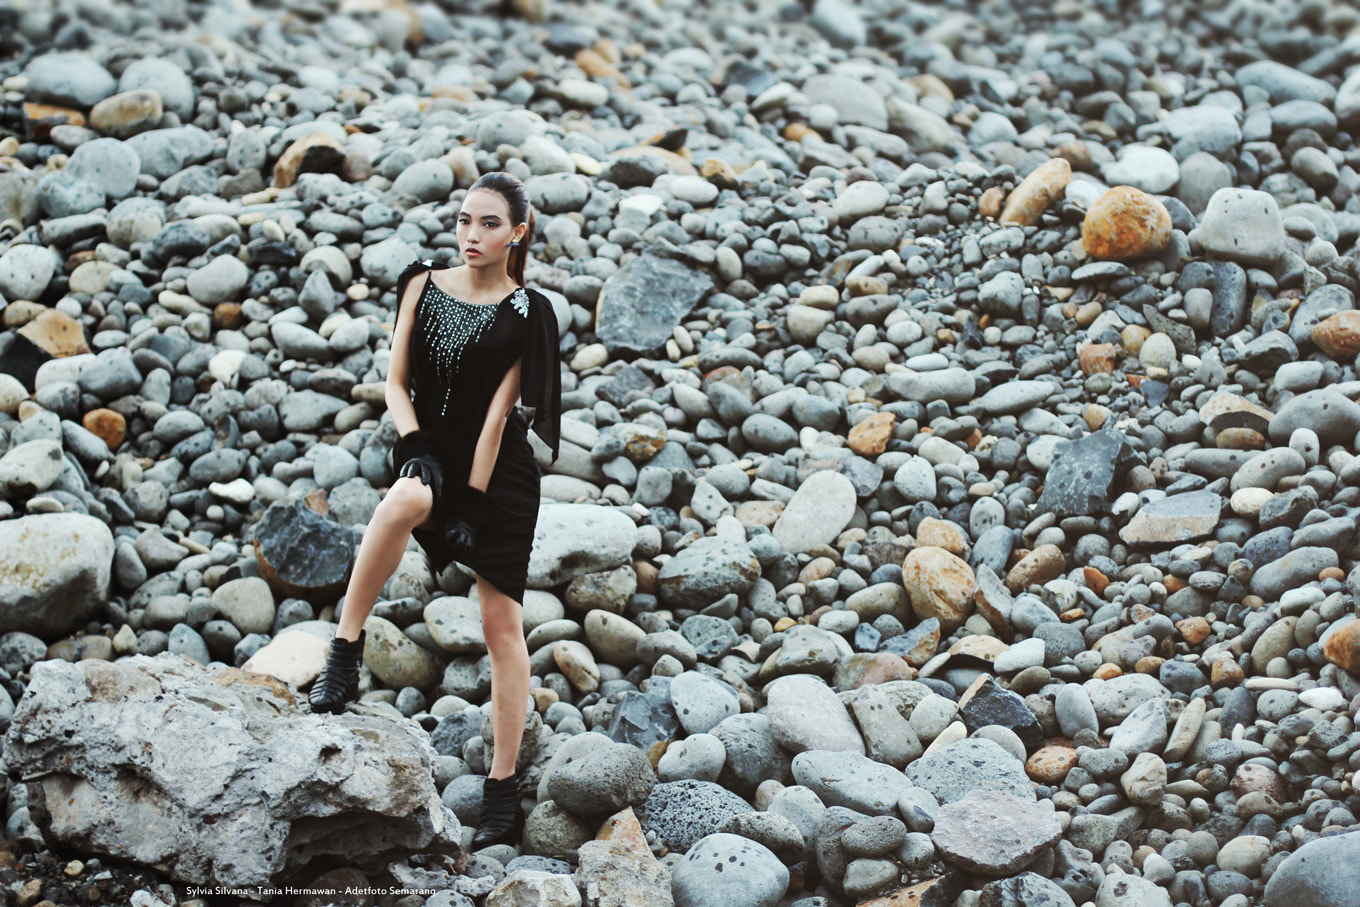 Photograph The Gravel01 by Adet Foto on 500px